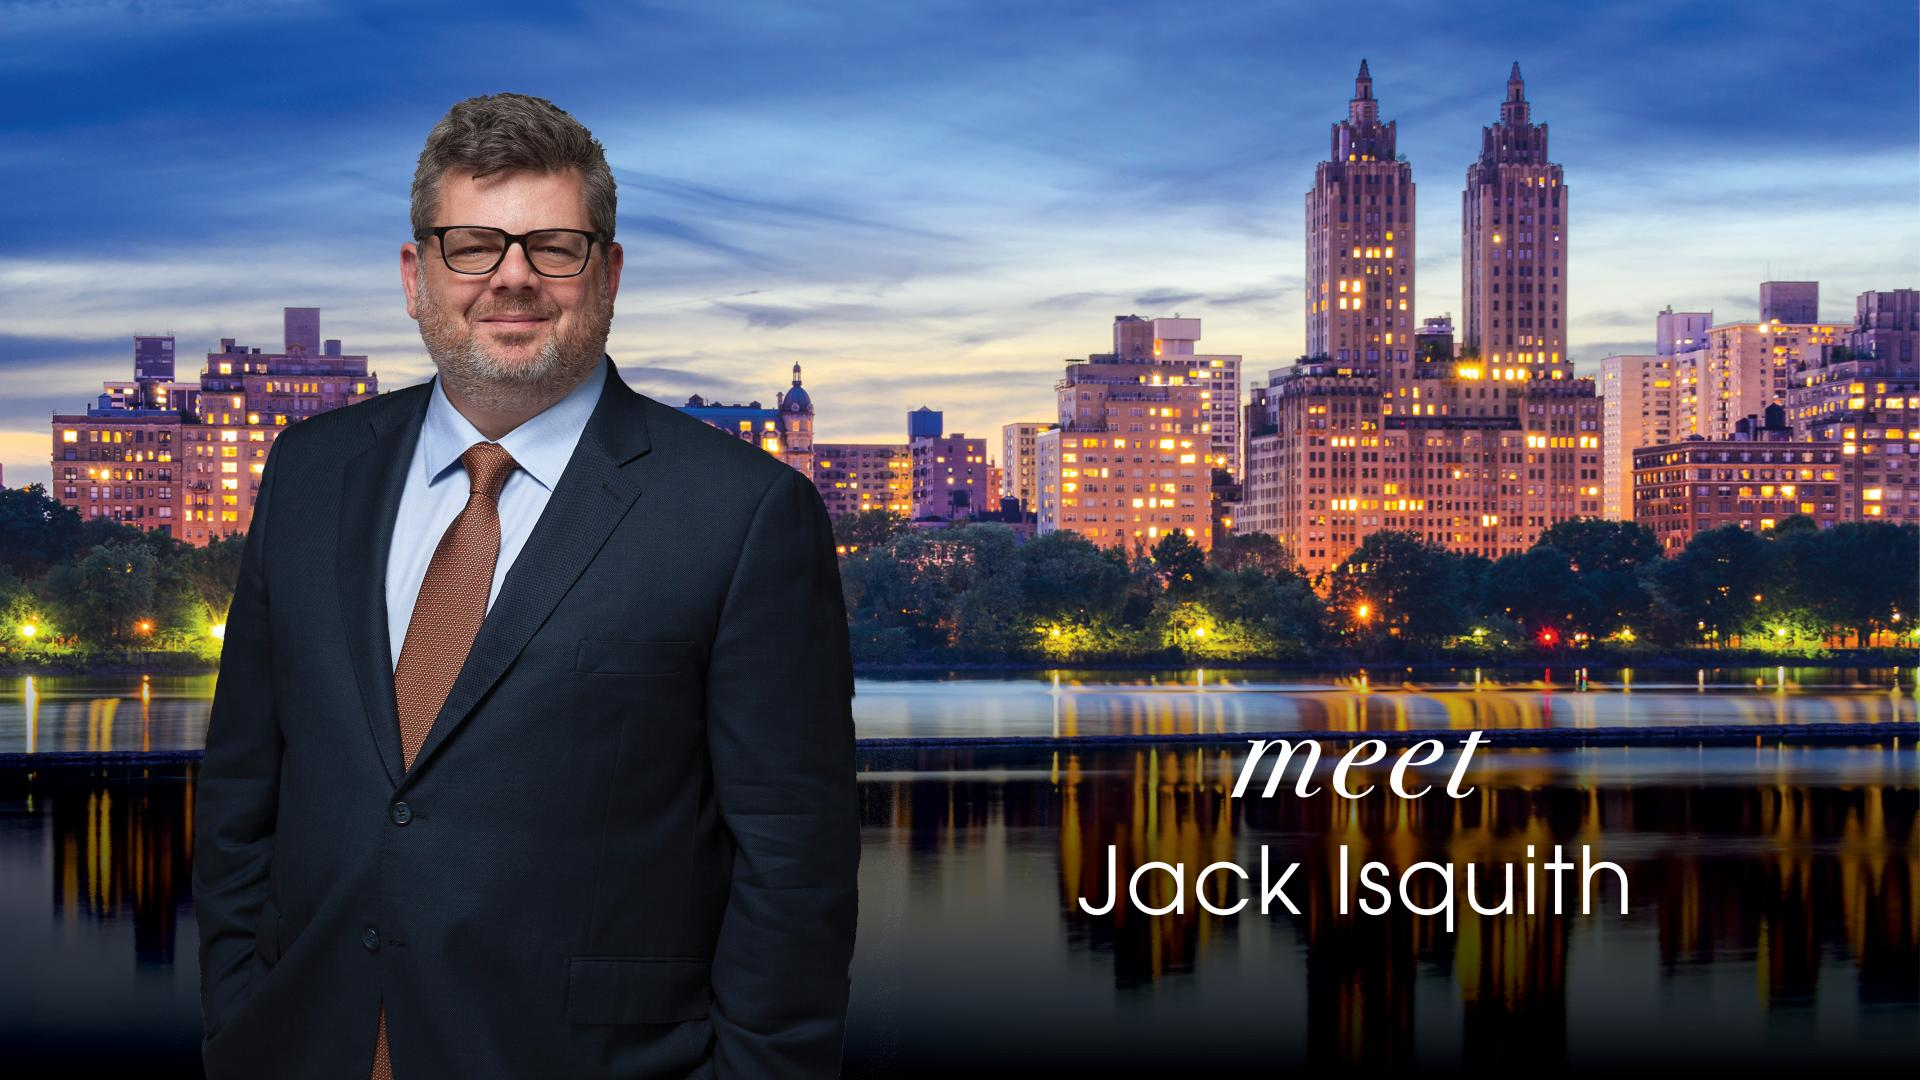 Meet Jack Isquith